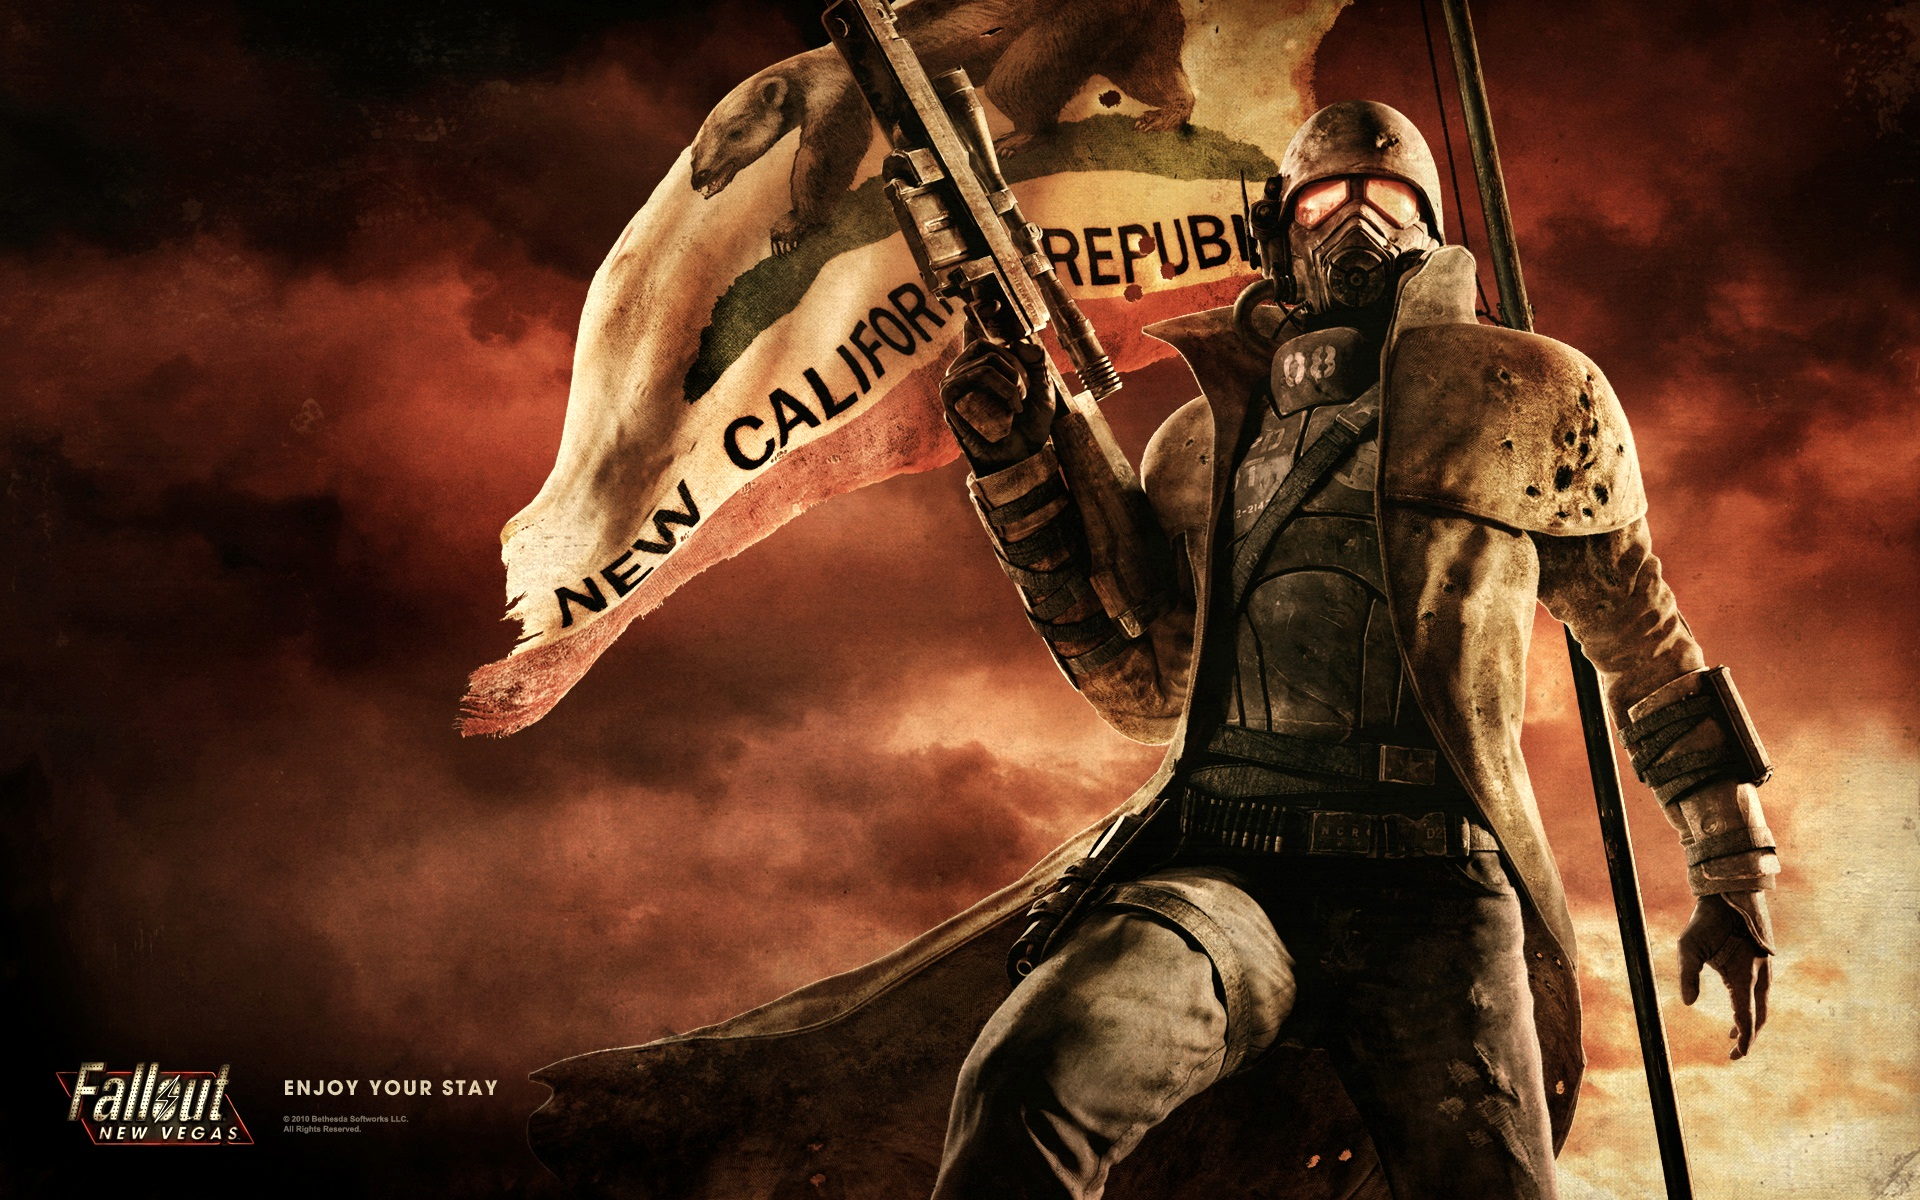 image - fallout-new-vegas-hd wallpapers | fallout wiki | fandom